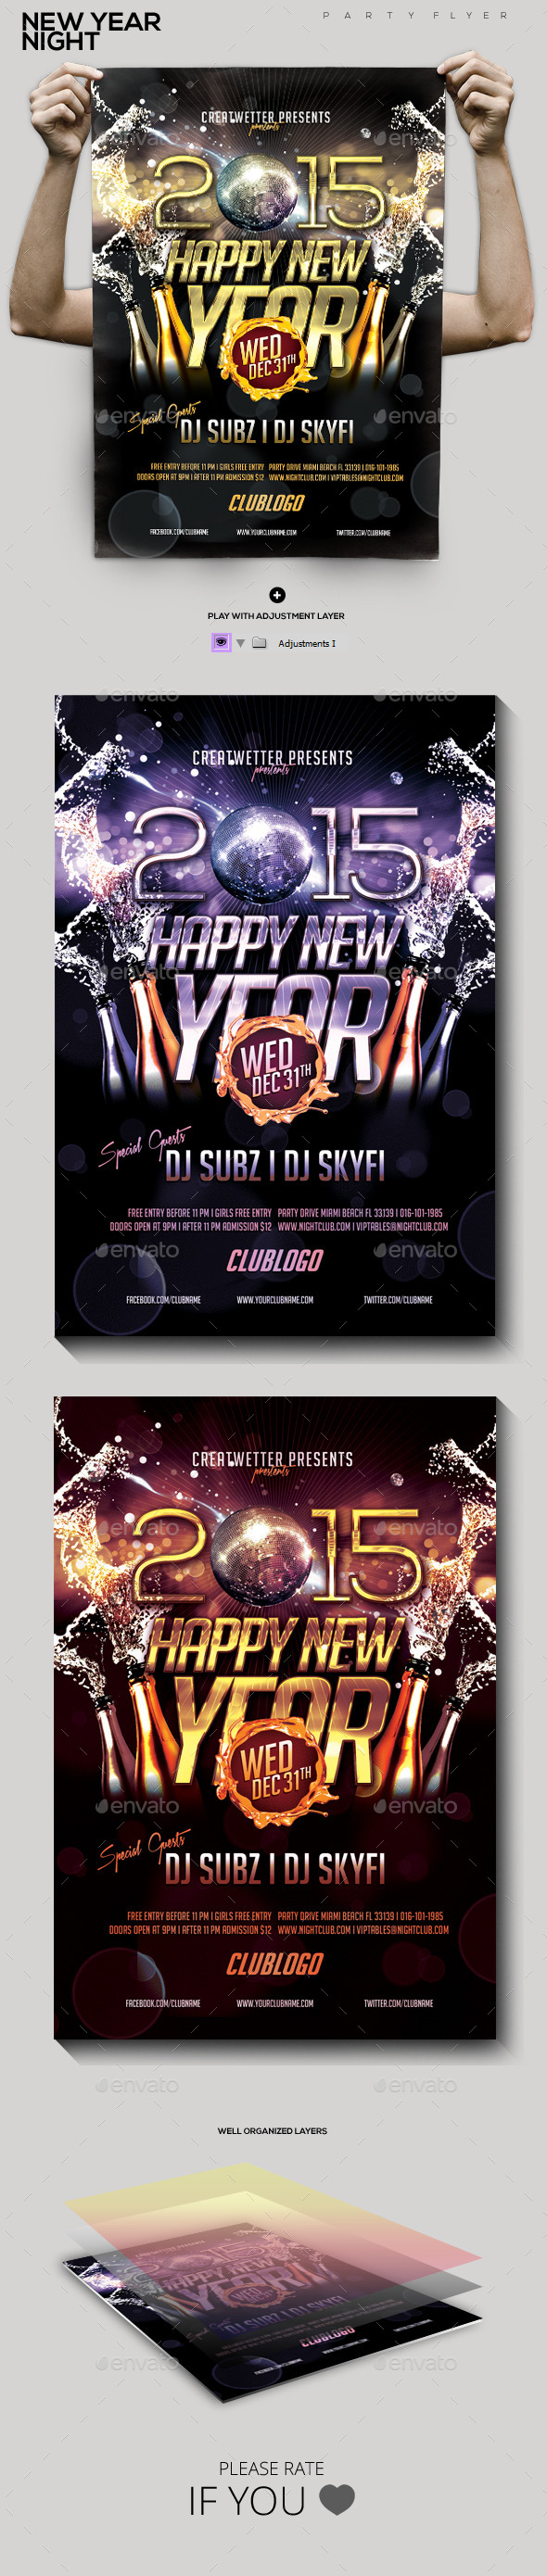 New Year Night Party Flyer - Holidays Events